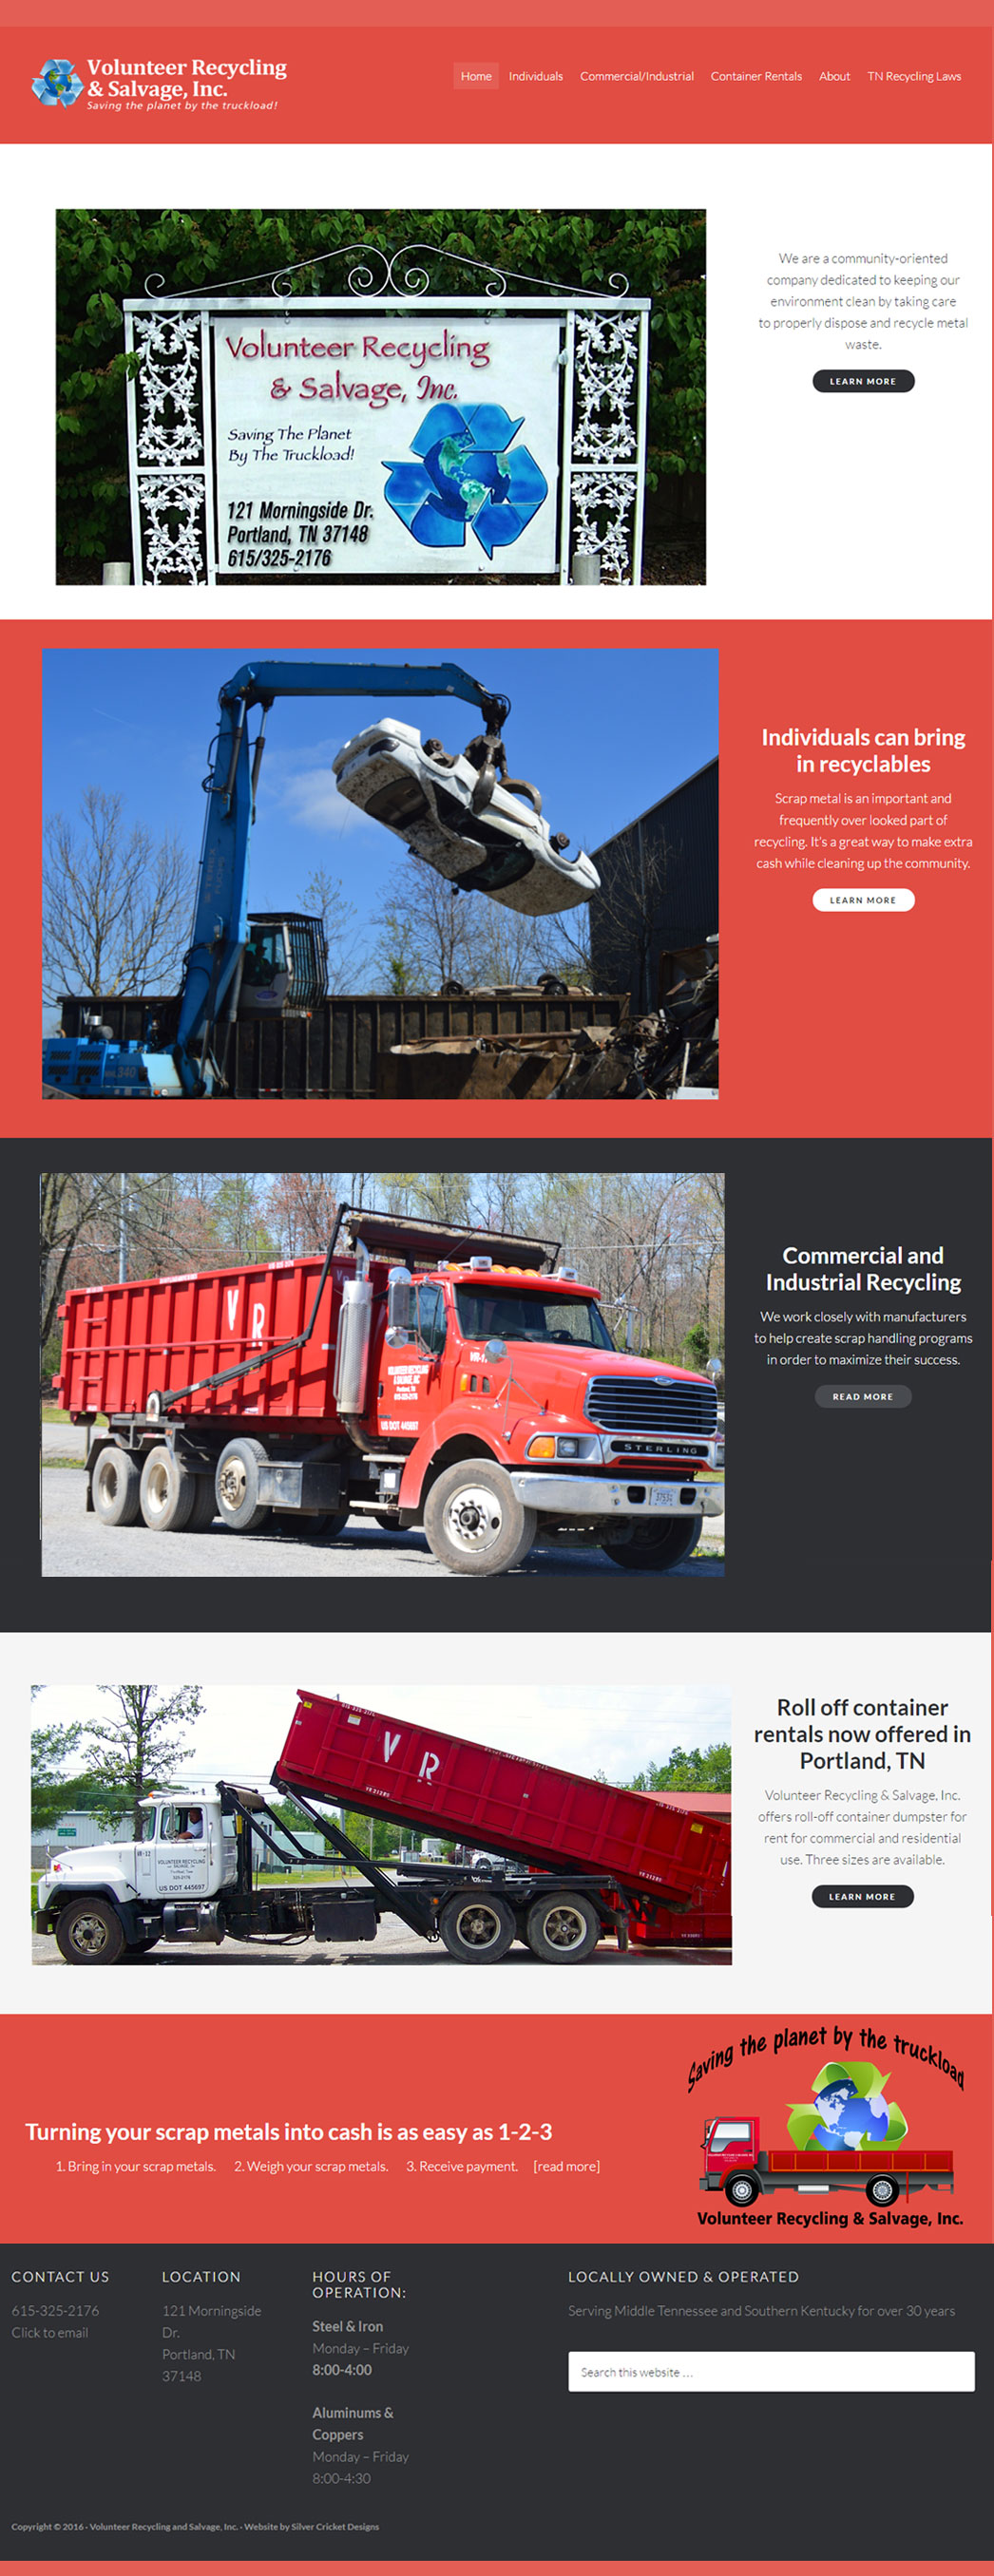 Website redesign for Volunteer Recycling and Salvage, Inc. Portland, TN